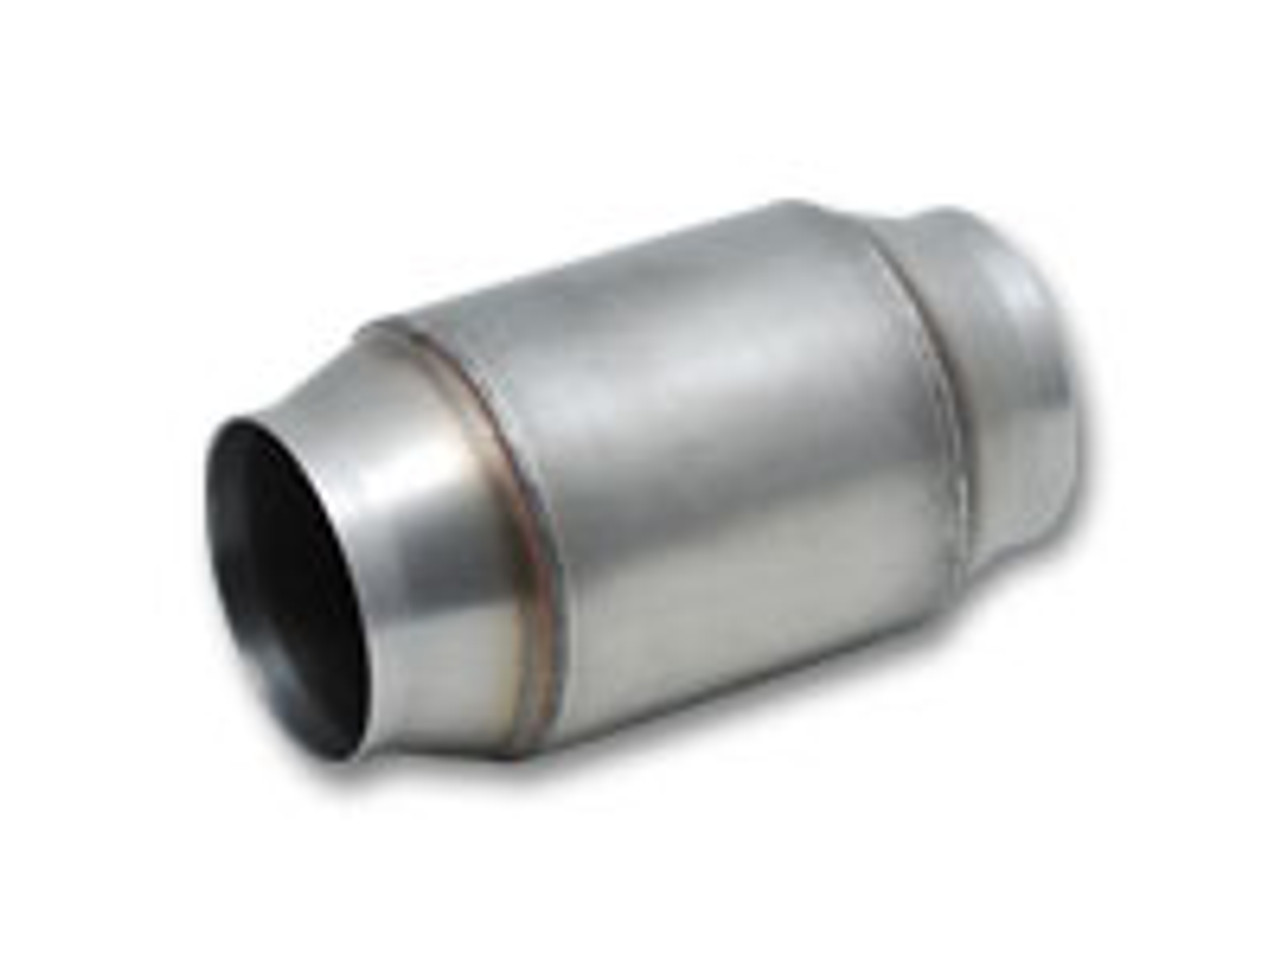 Vibrant GESi High Output Univ OBD2 Catalytic Converters 4in OD x 4in body 3in